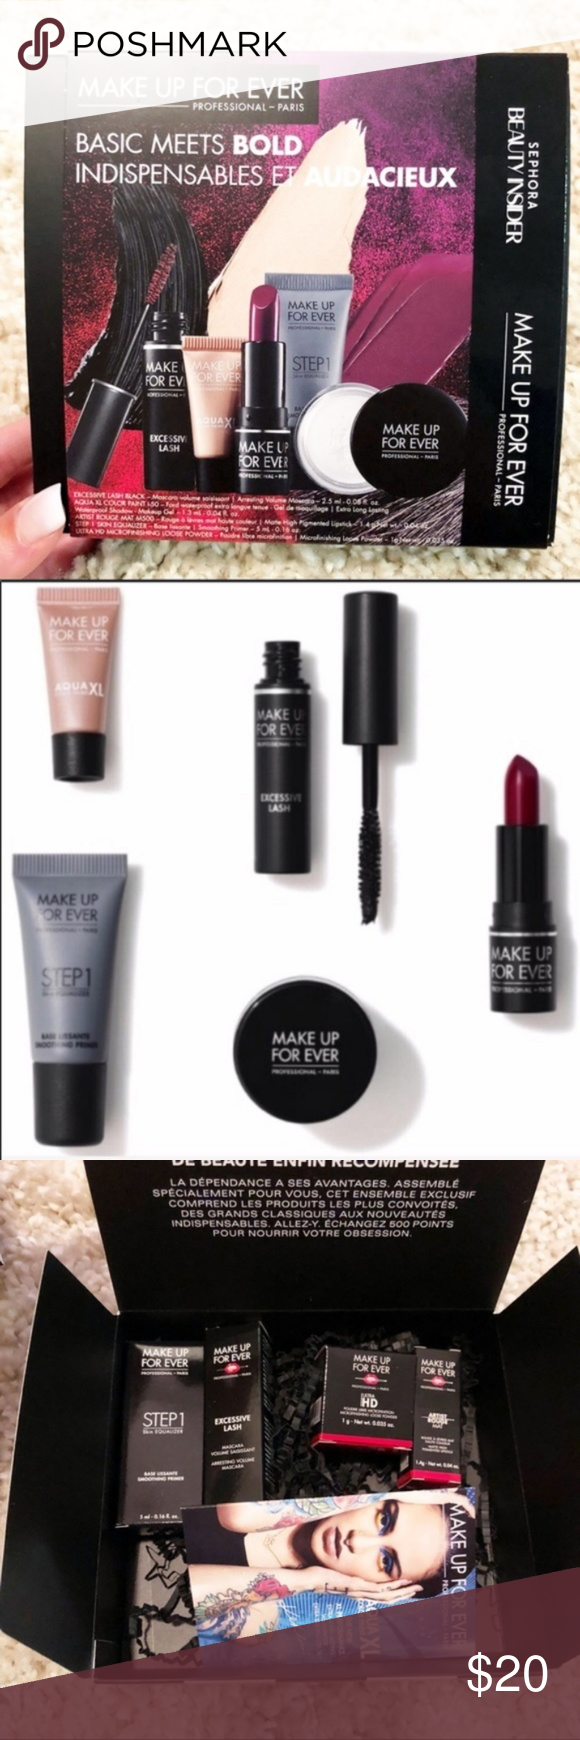 Luxury Beauty Samples Makeup Forever Sephora This listing